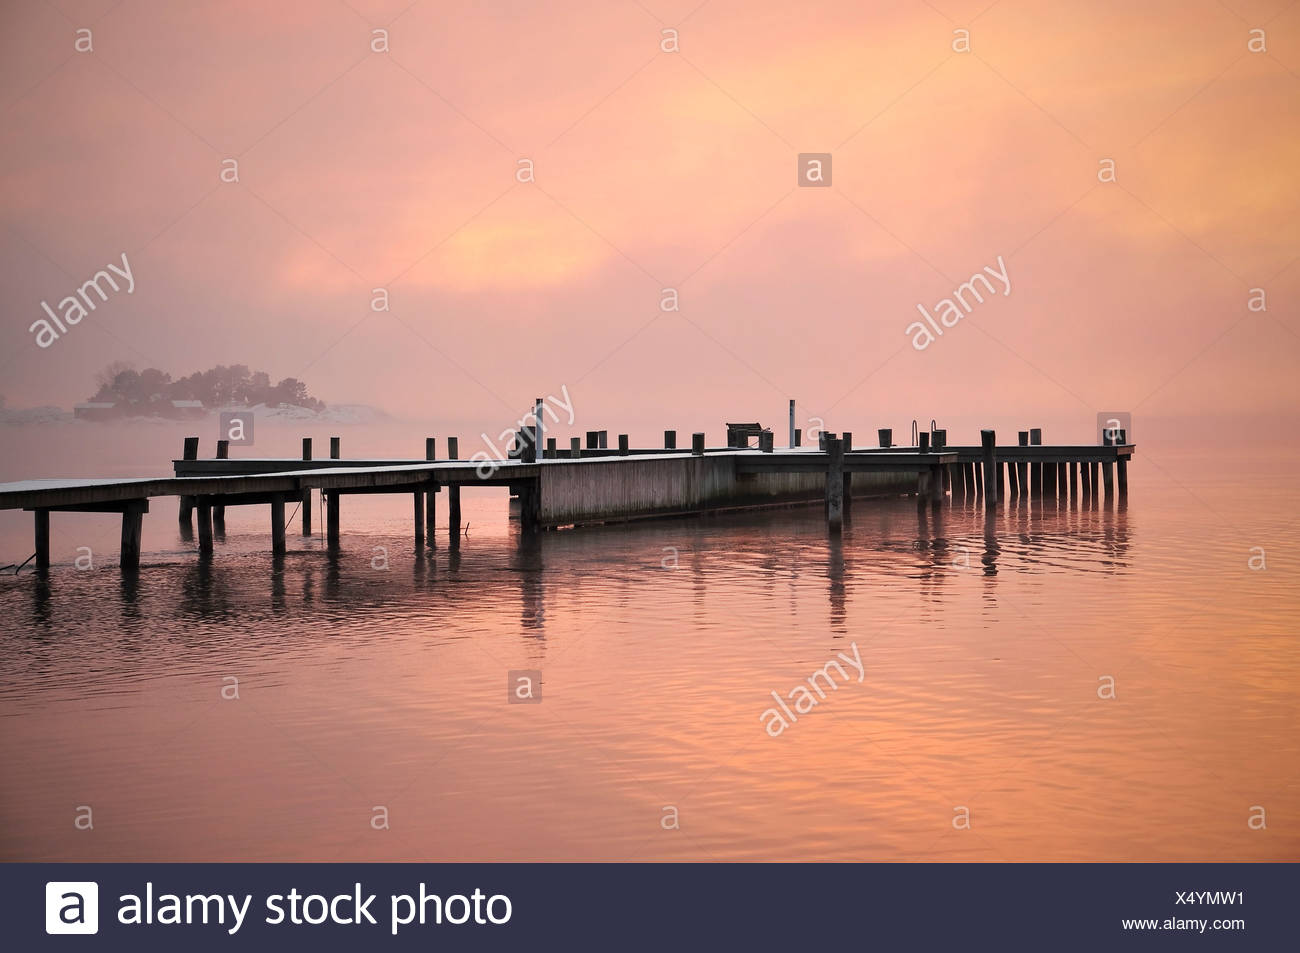 Jetty surrounded by water at dusk - Stock Image